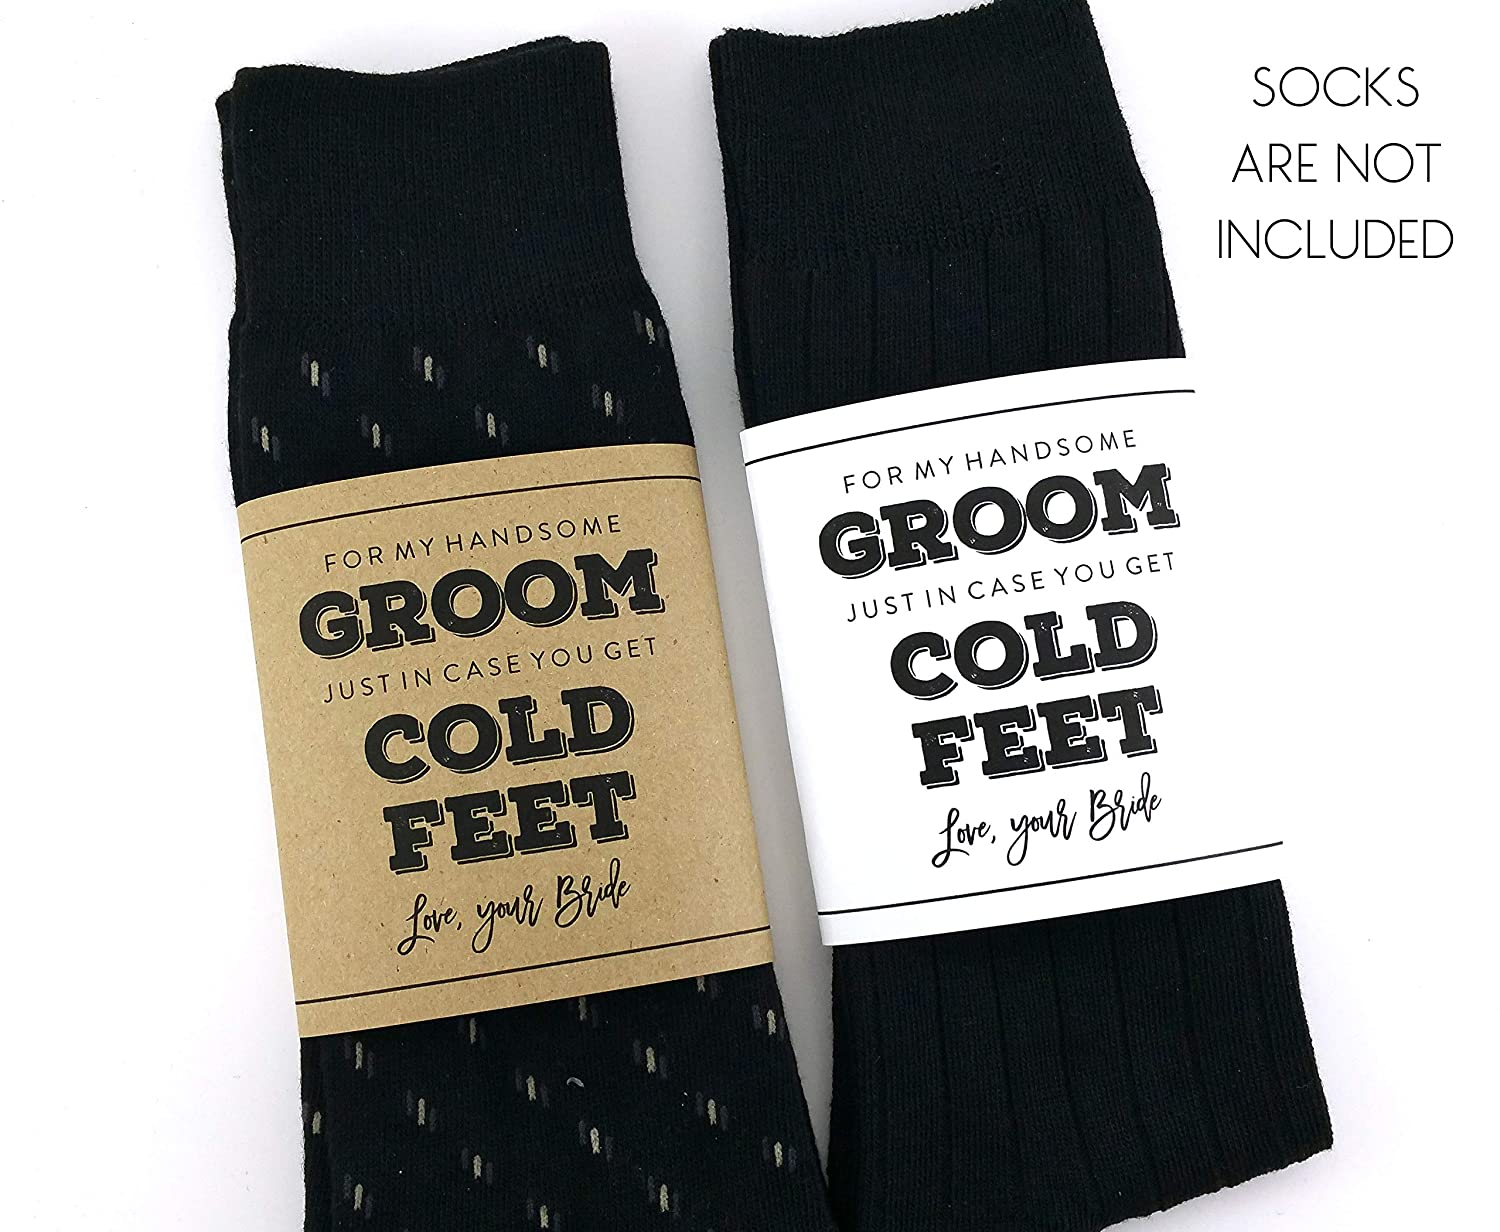 Cold Feet Sock Wrapper, Groom Gift, Wedding Socks Wrapper, Wedding Socks Label (SOCKS NOT INCLUDED)